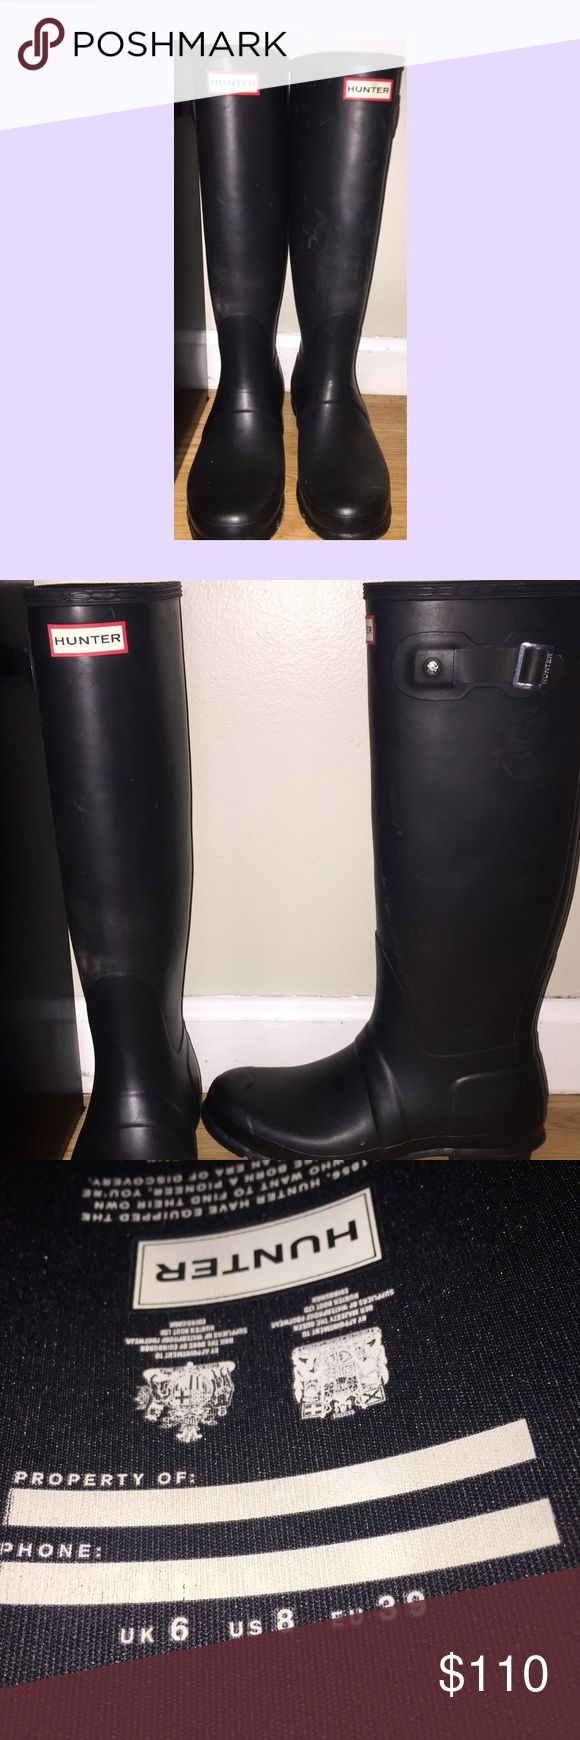 Original Tall Hunter Rain Boot Matte Black size 8 Only worn a handful of times. In perfect condition. Do not have original box anymore. Hunter Shoes Winter & Rain Boots